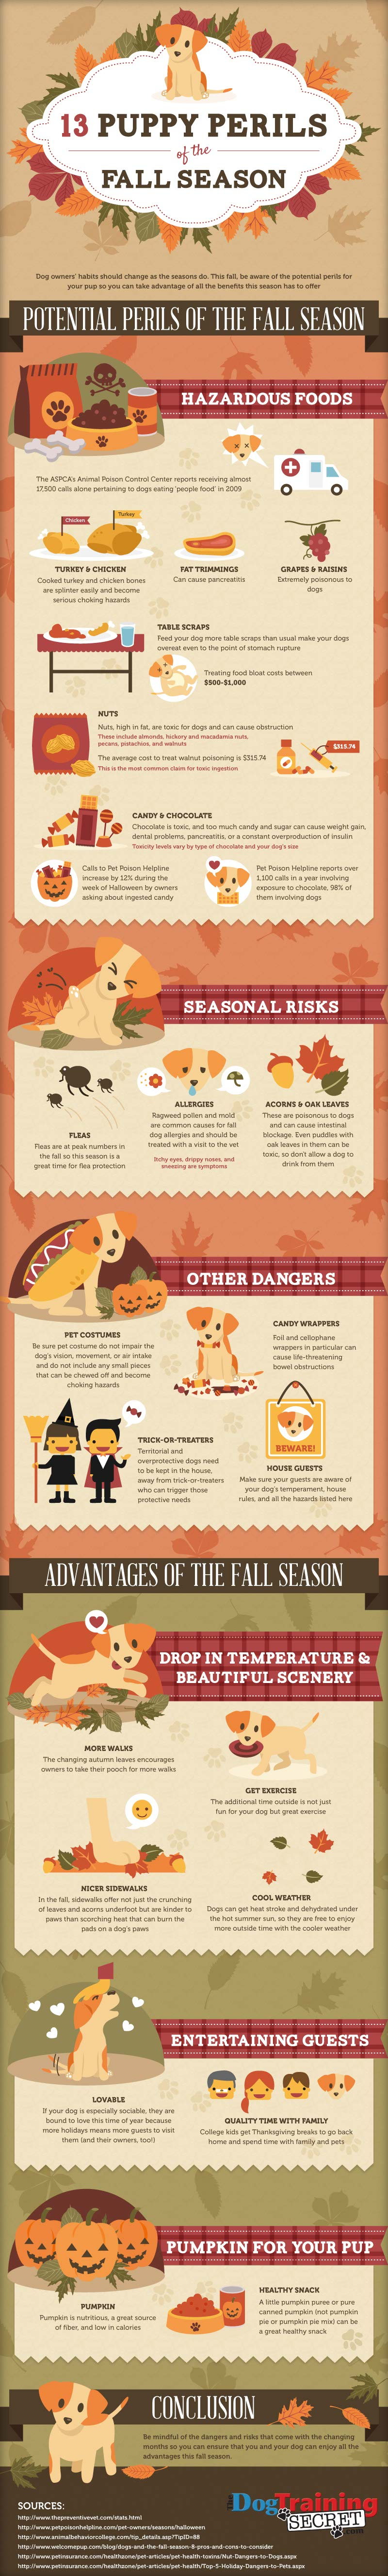 Puppy Care Tips in Fall-Infographic